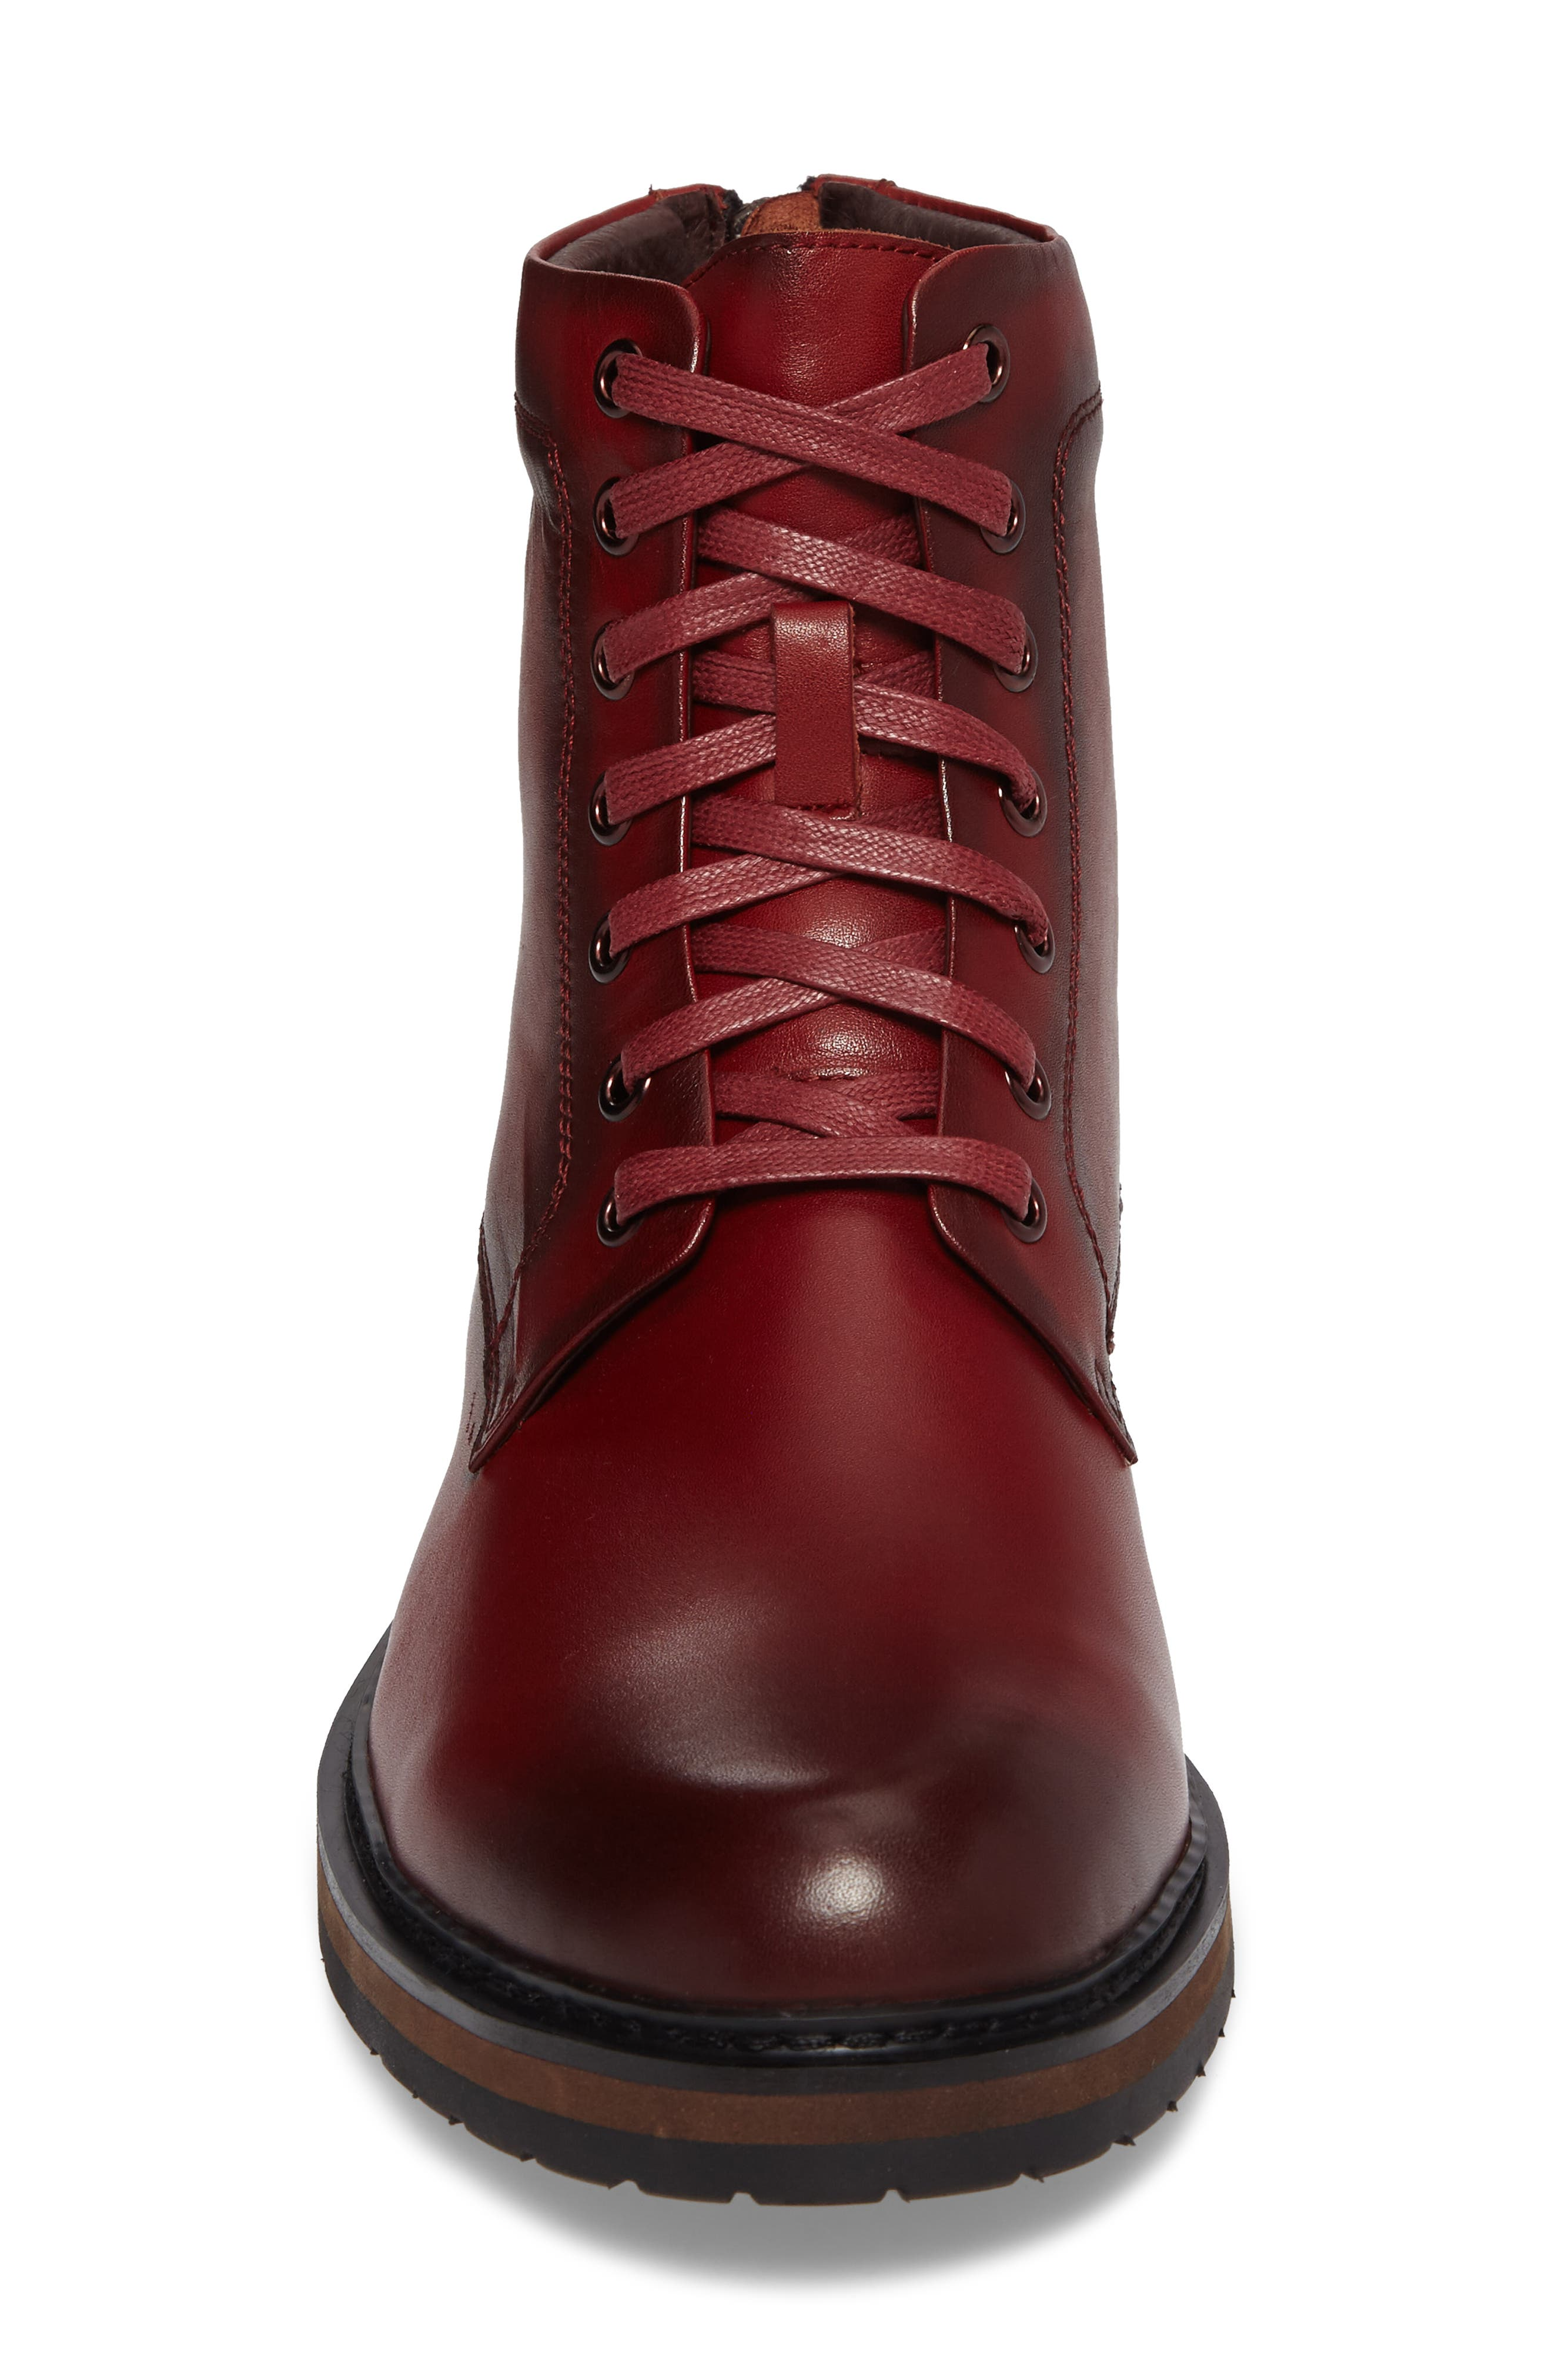 Miro Combat Boot,                             Alternate thumbnail 4, color,                             Wine Leather